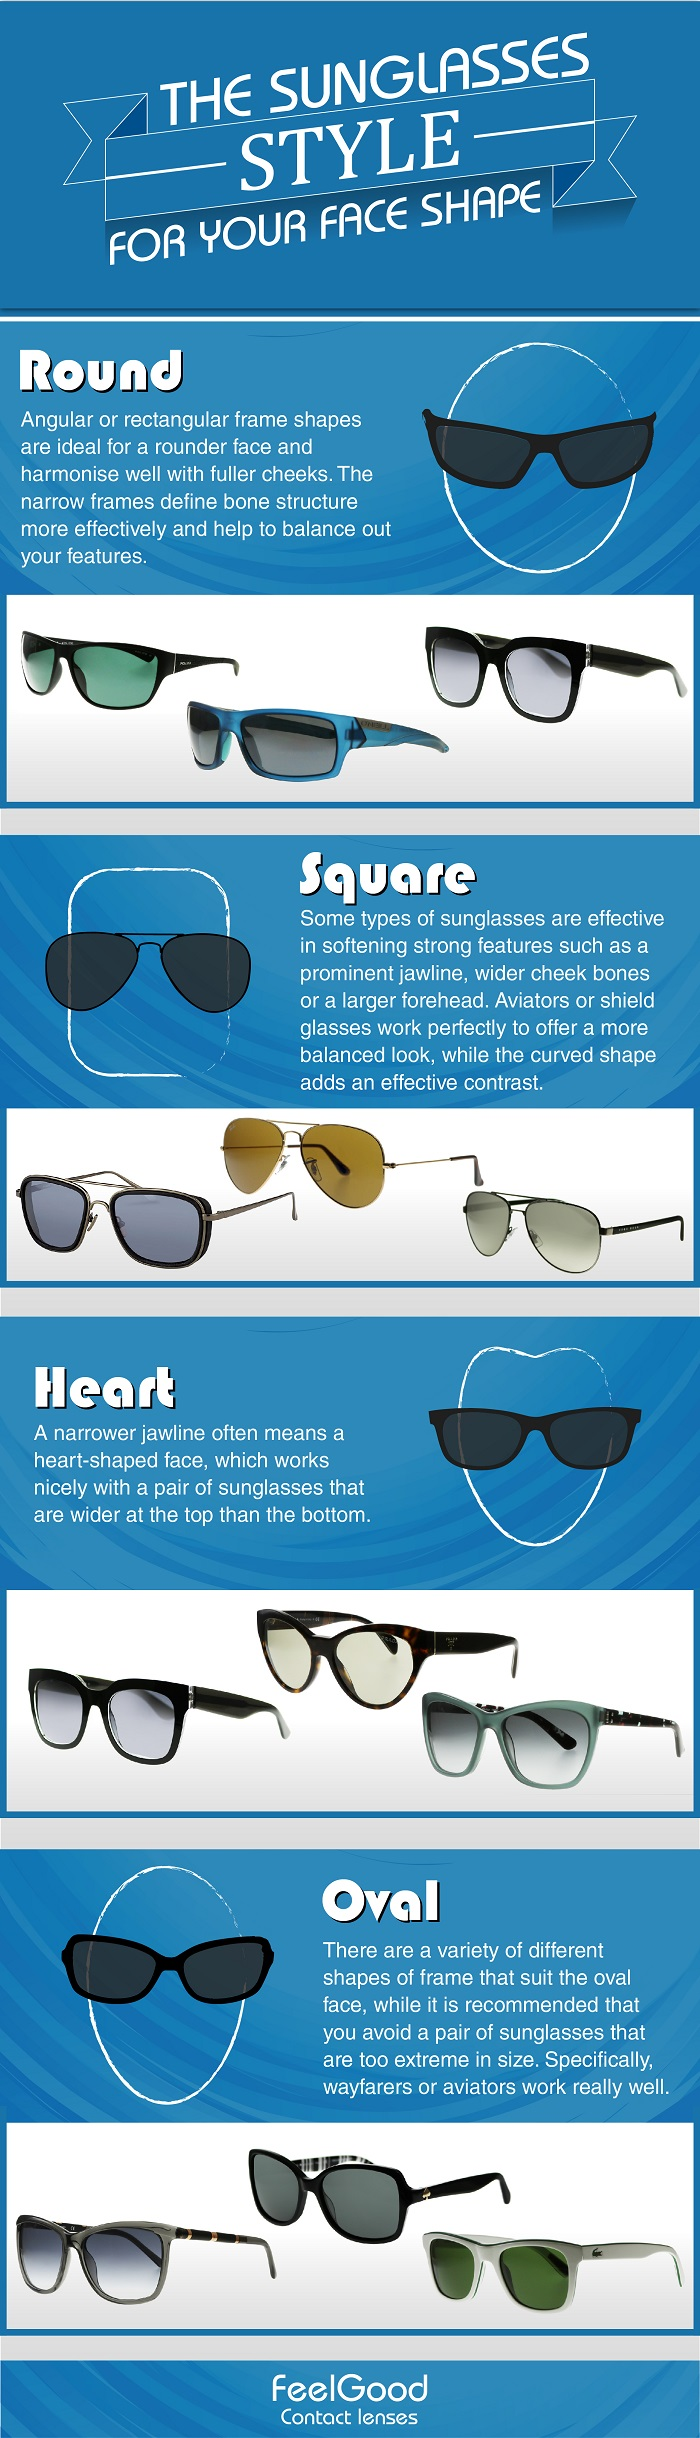 sunglasses for your face shape infographic